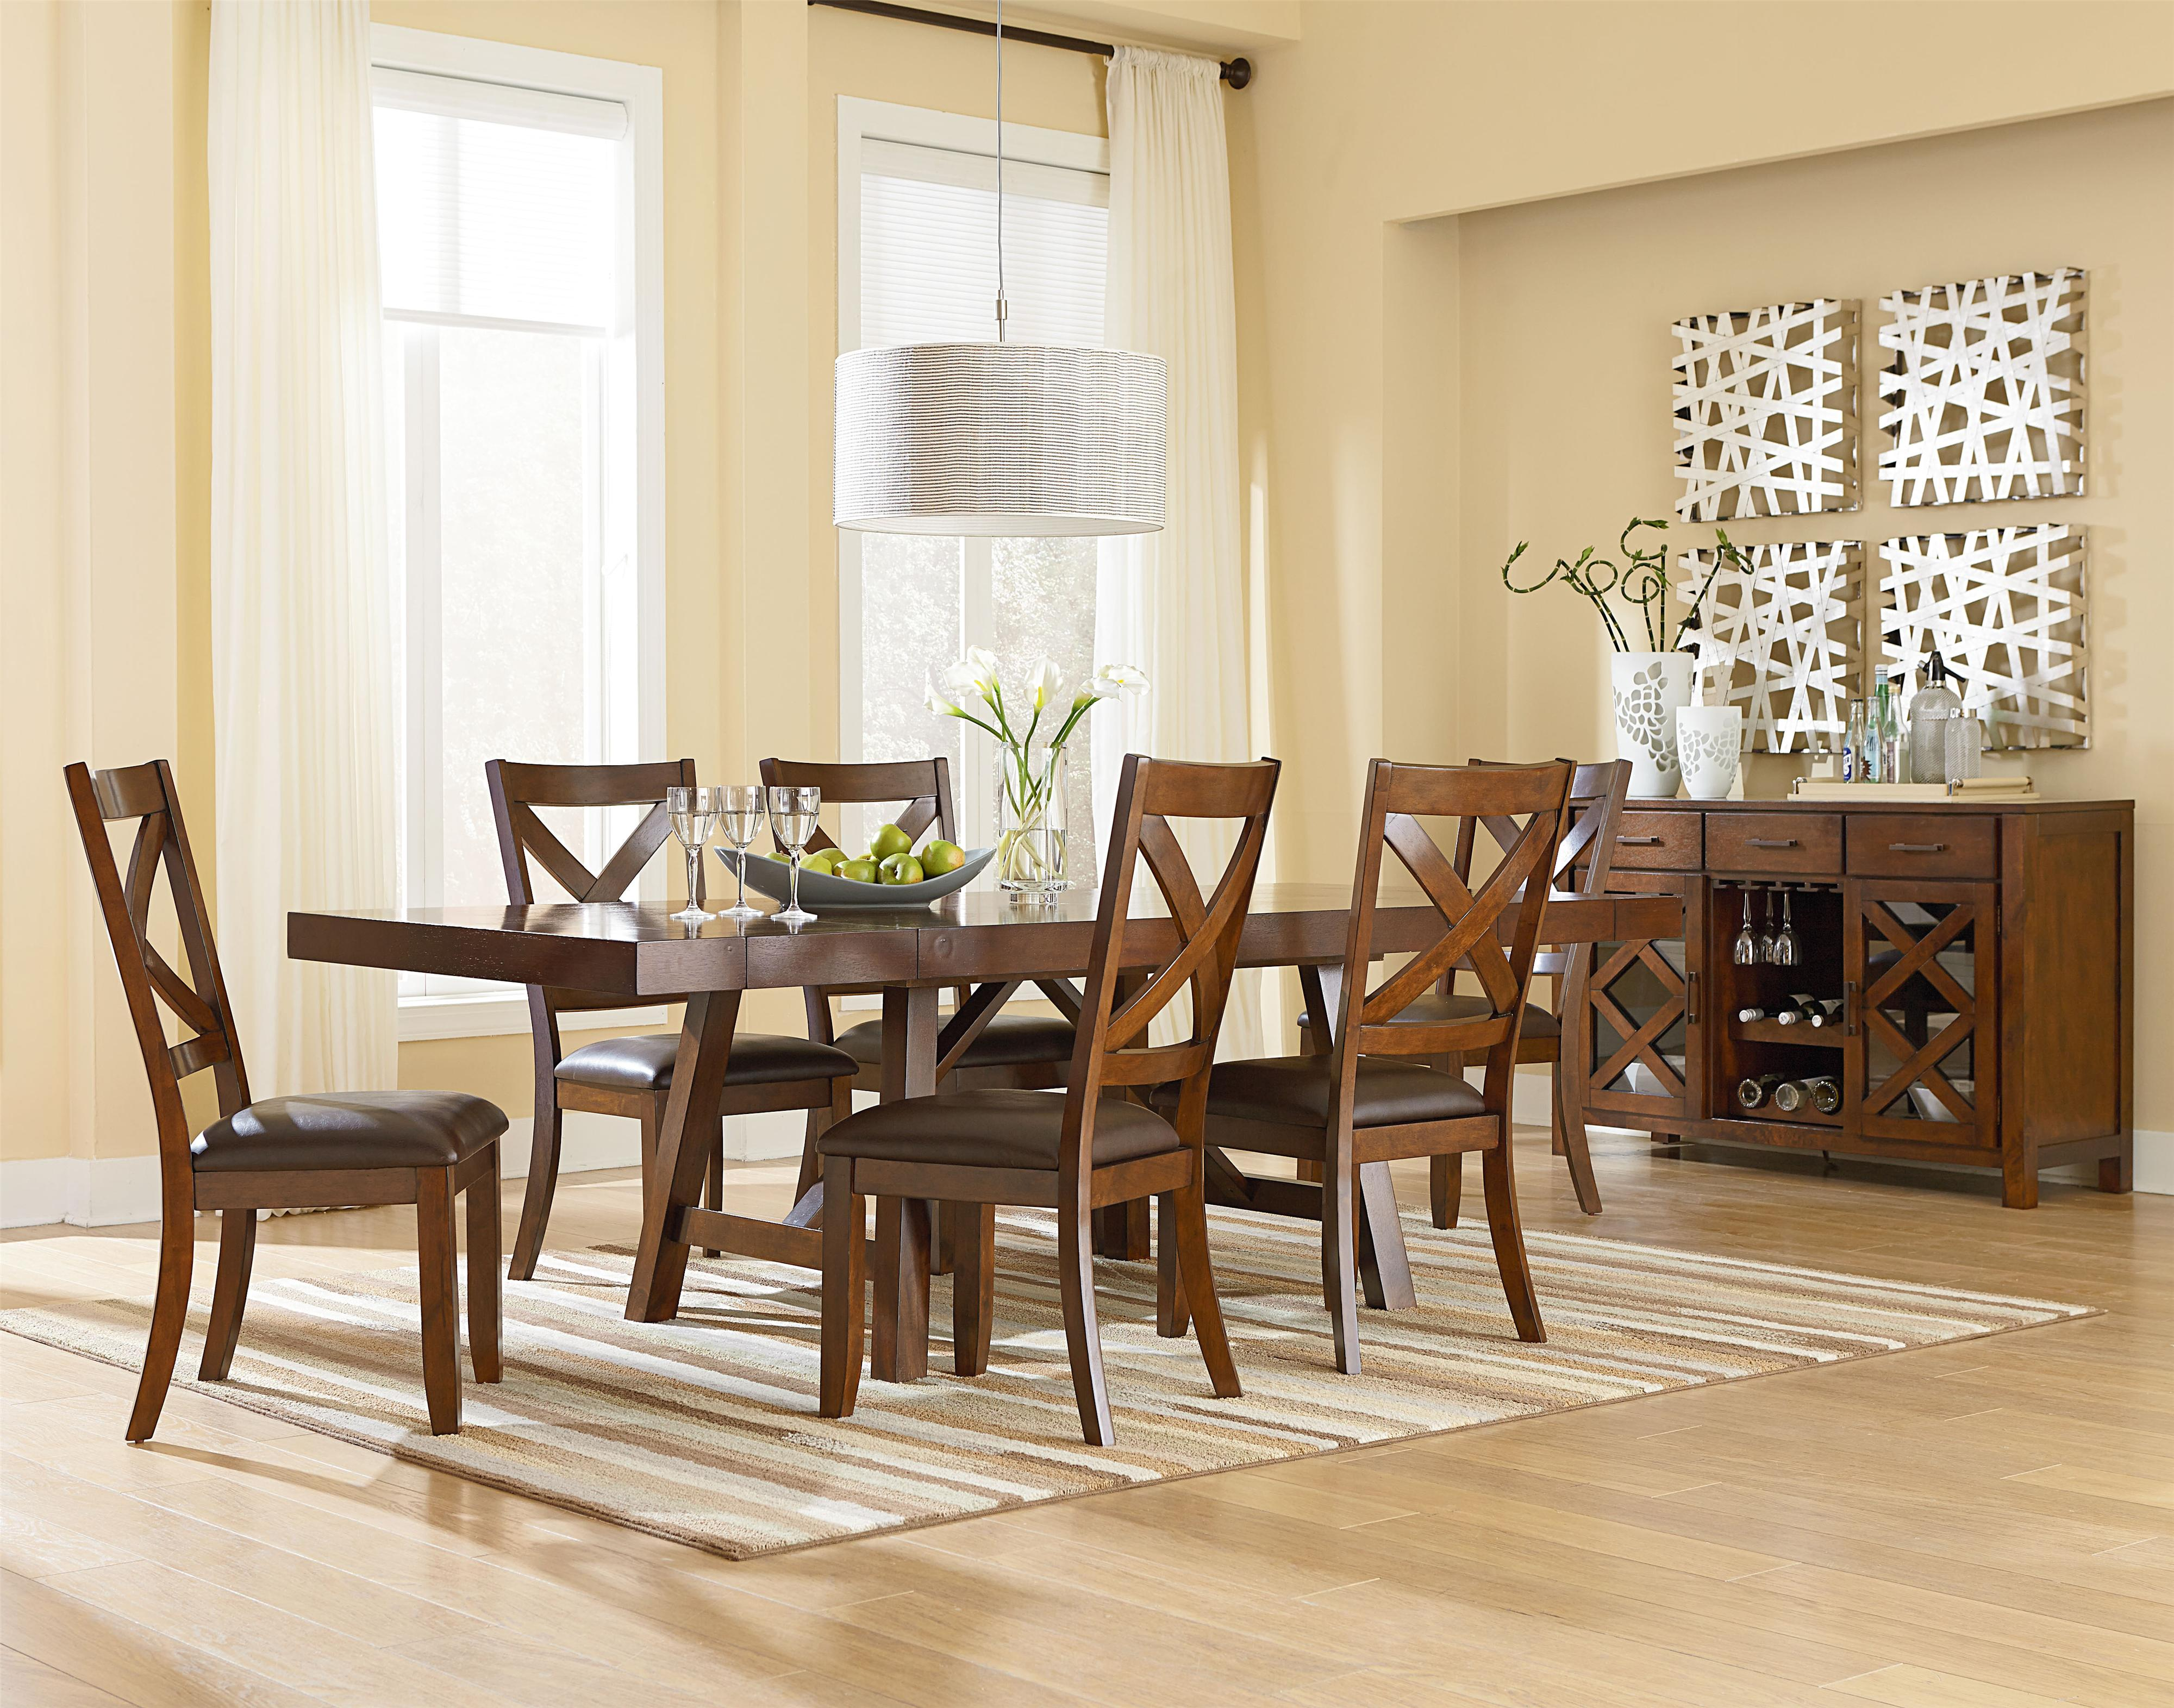 Standard Furniture Omaha Brown Trestle Dining Room Table with Two Leaves | Standard Furniture | Dining Tables Birmingham Huntsville Hoover Decatur ... & Standard Furniture Omaha Brown Trestle Dining Room Table with Two ...